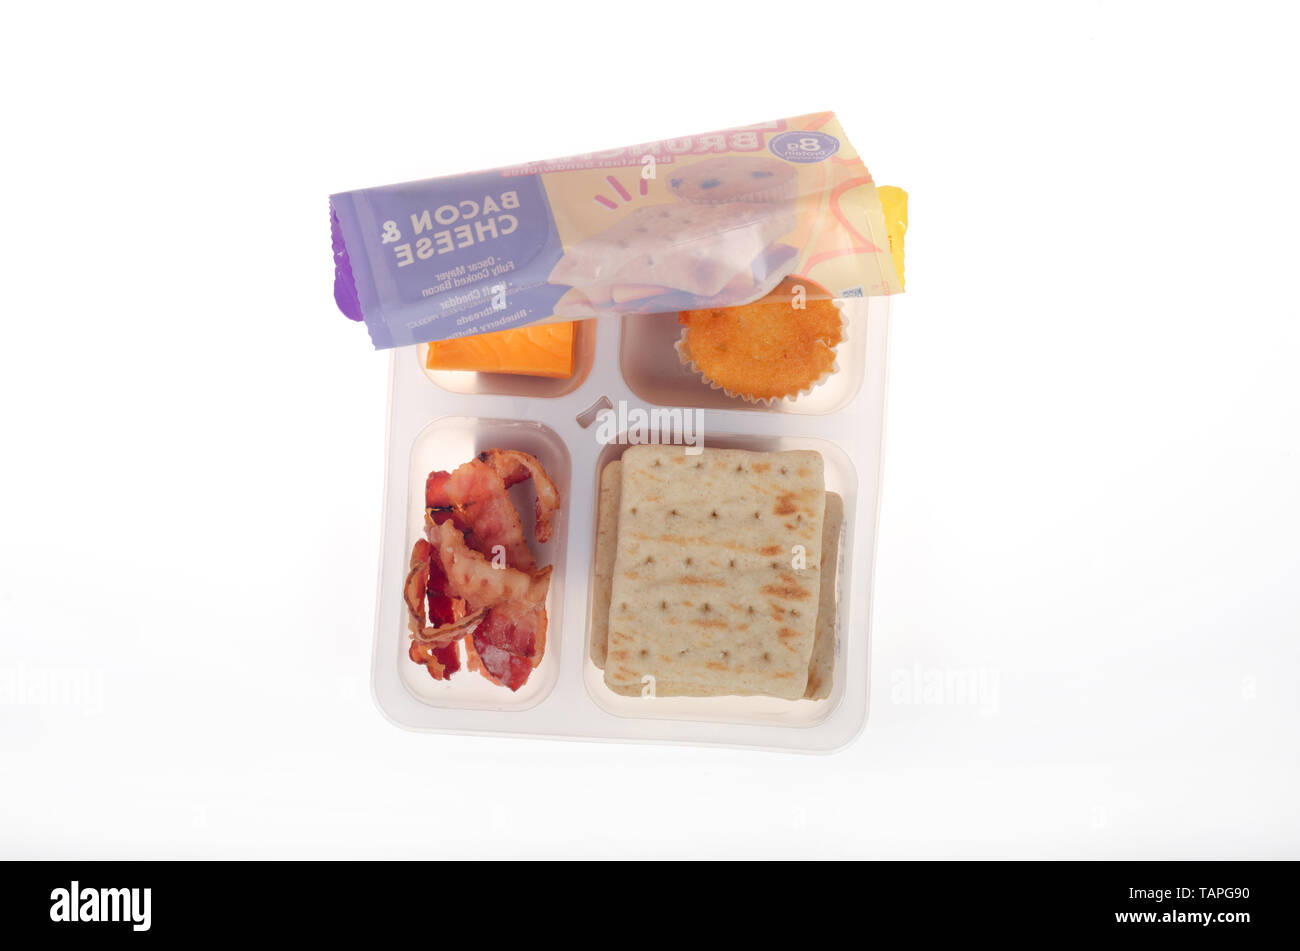 Oscar Mayer Brunchables with bacon, cheese, crackers and muffin - Stock Image